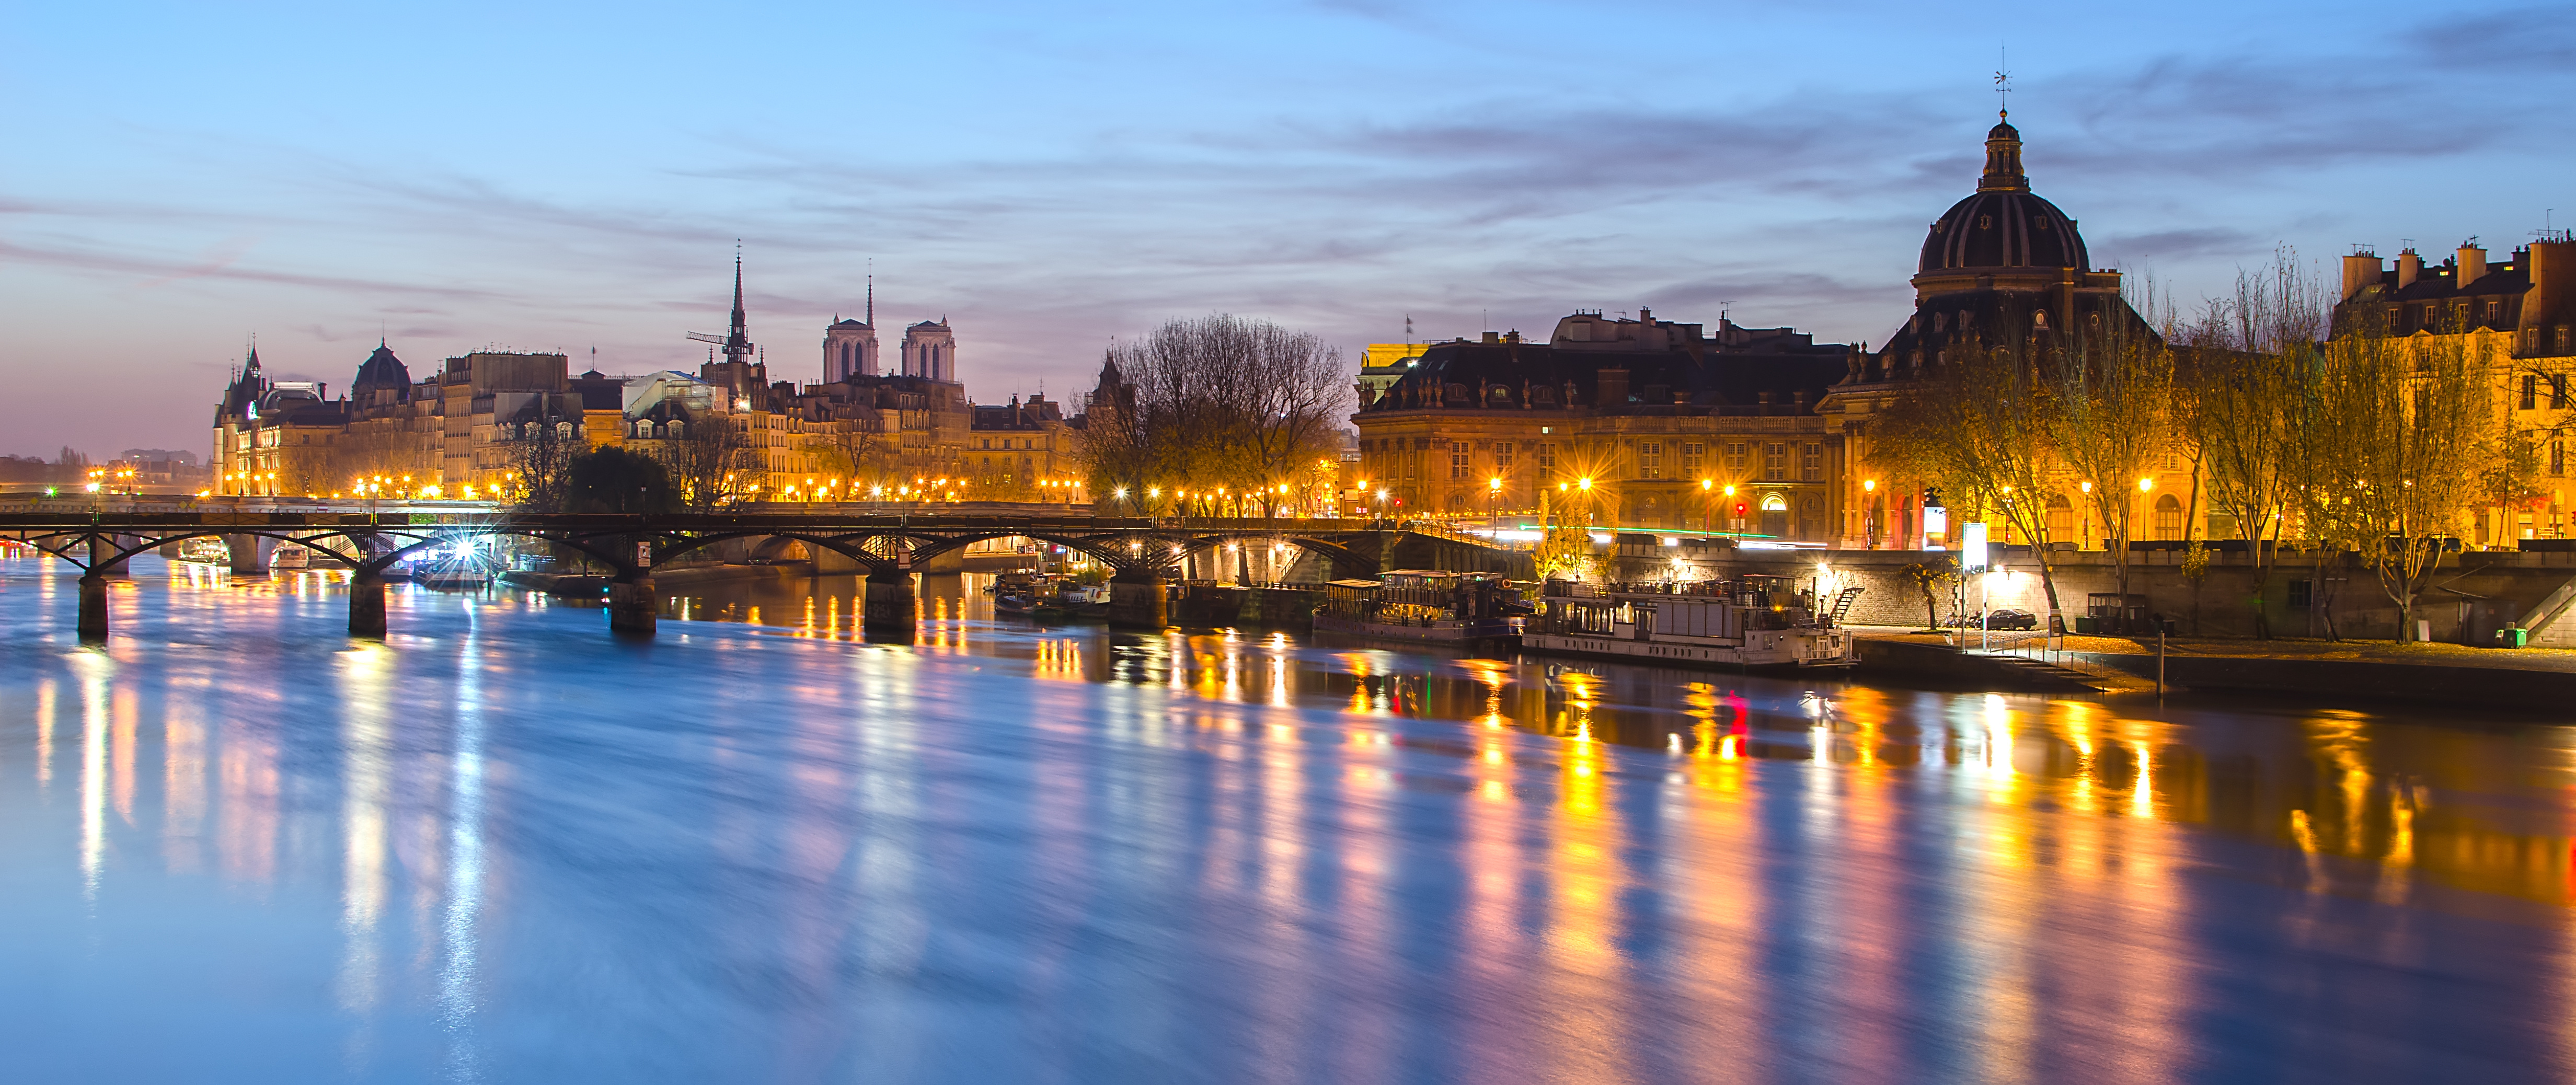 Seine river and Old Town of Paris (France) at night